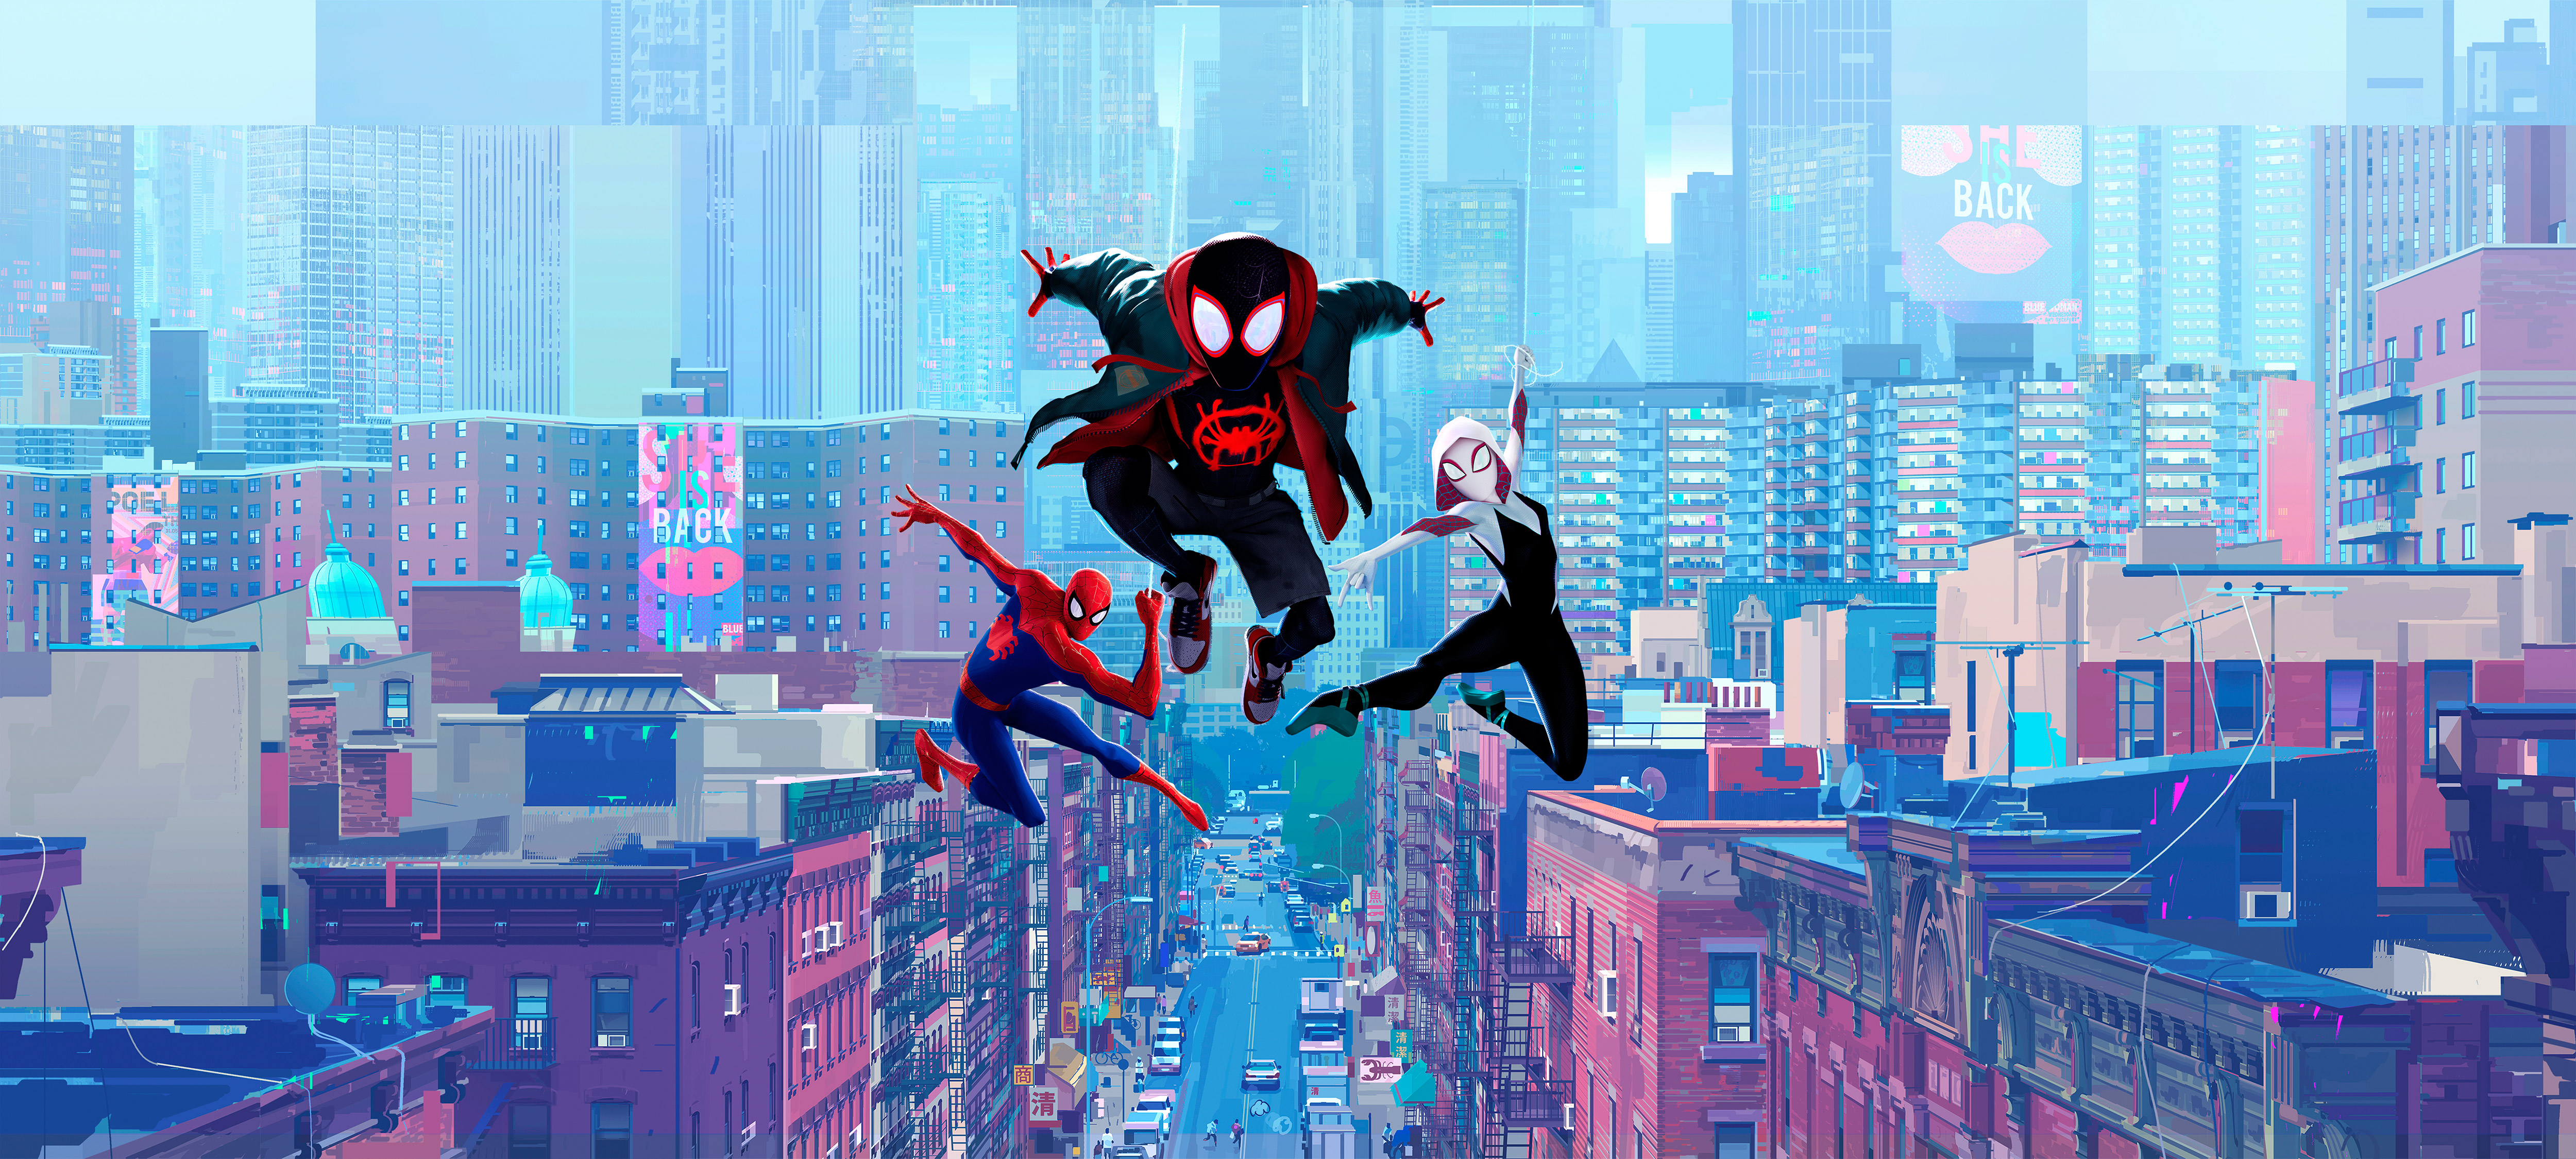 Into The Spider Verse X Wallpaper Iwallpaper: Spiderman Into Spider Verse 5k, HD Movies, 4k Wallpapers